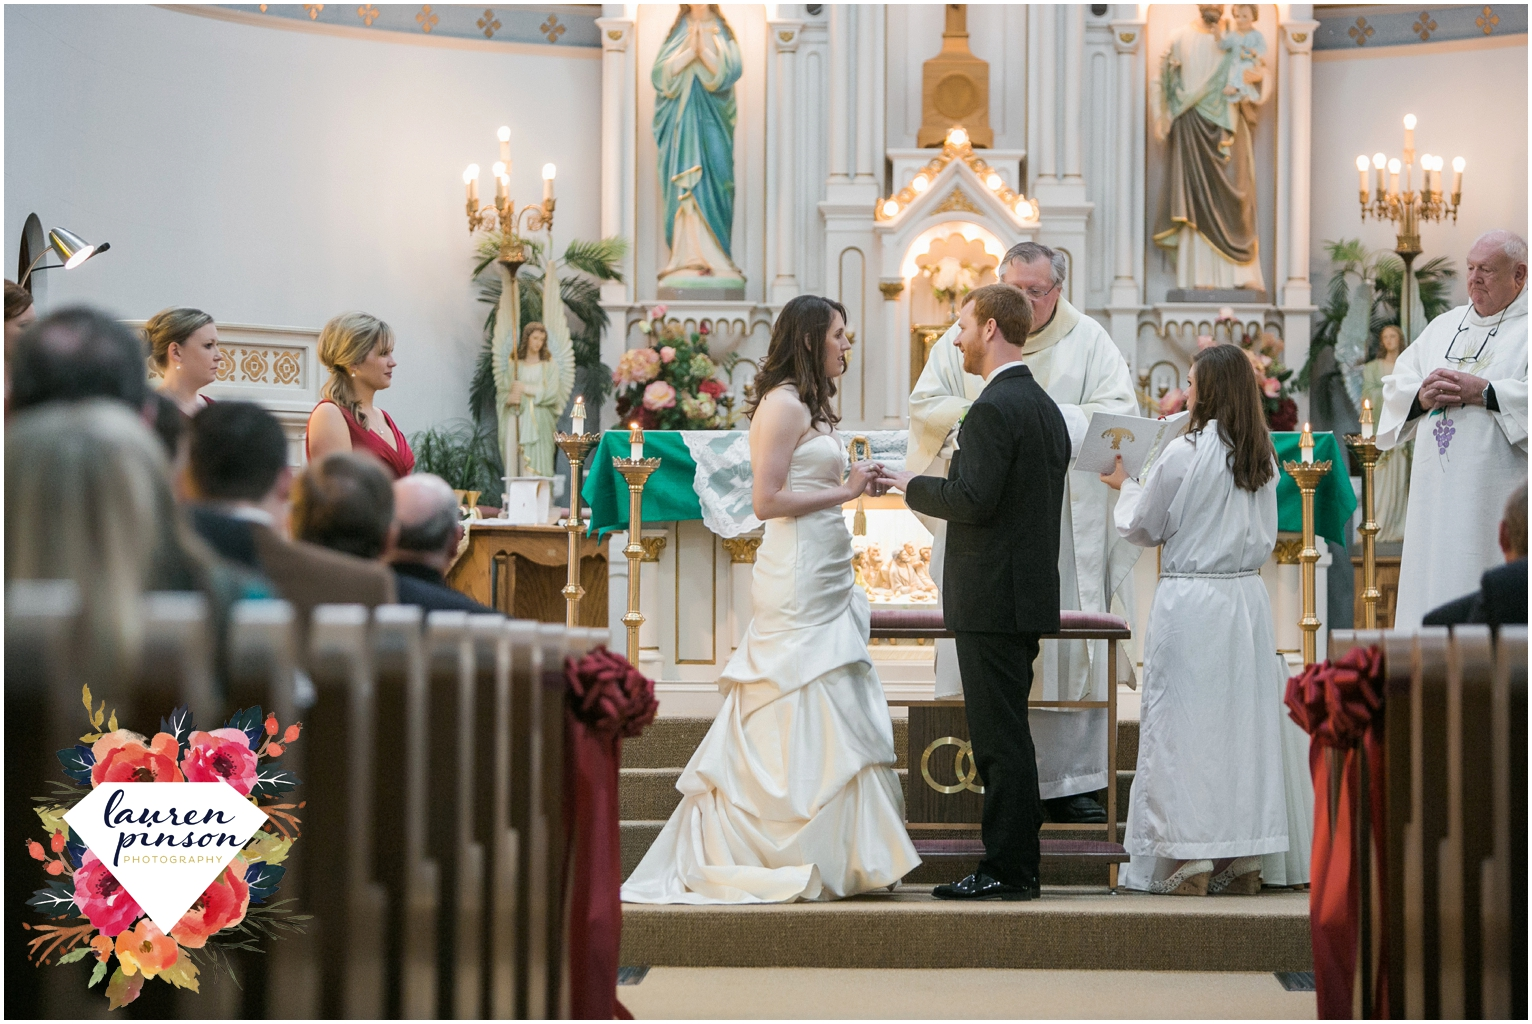 wichita-falls-wedding-photographer-OUR-Lady-queen-of-peace-catholic-wedding-the-forum-photography_0932.jpg